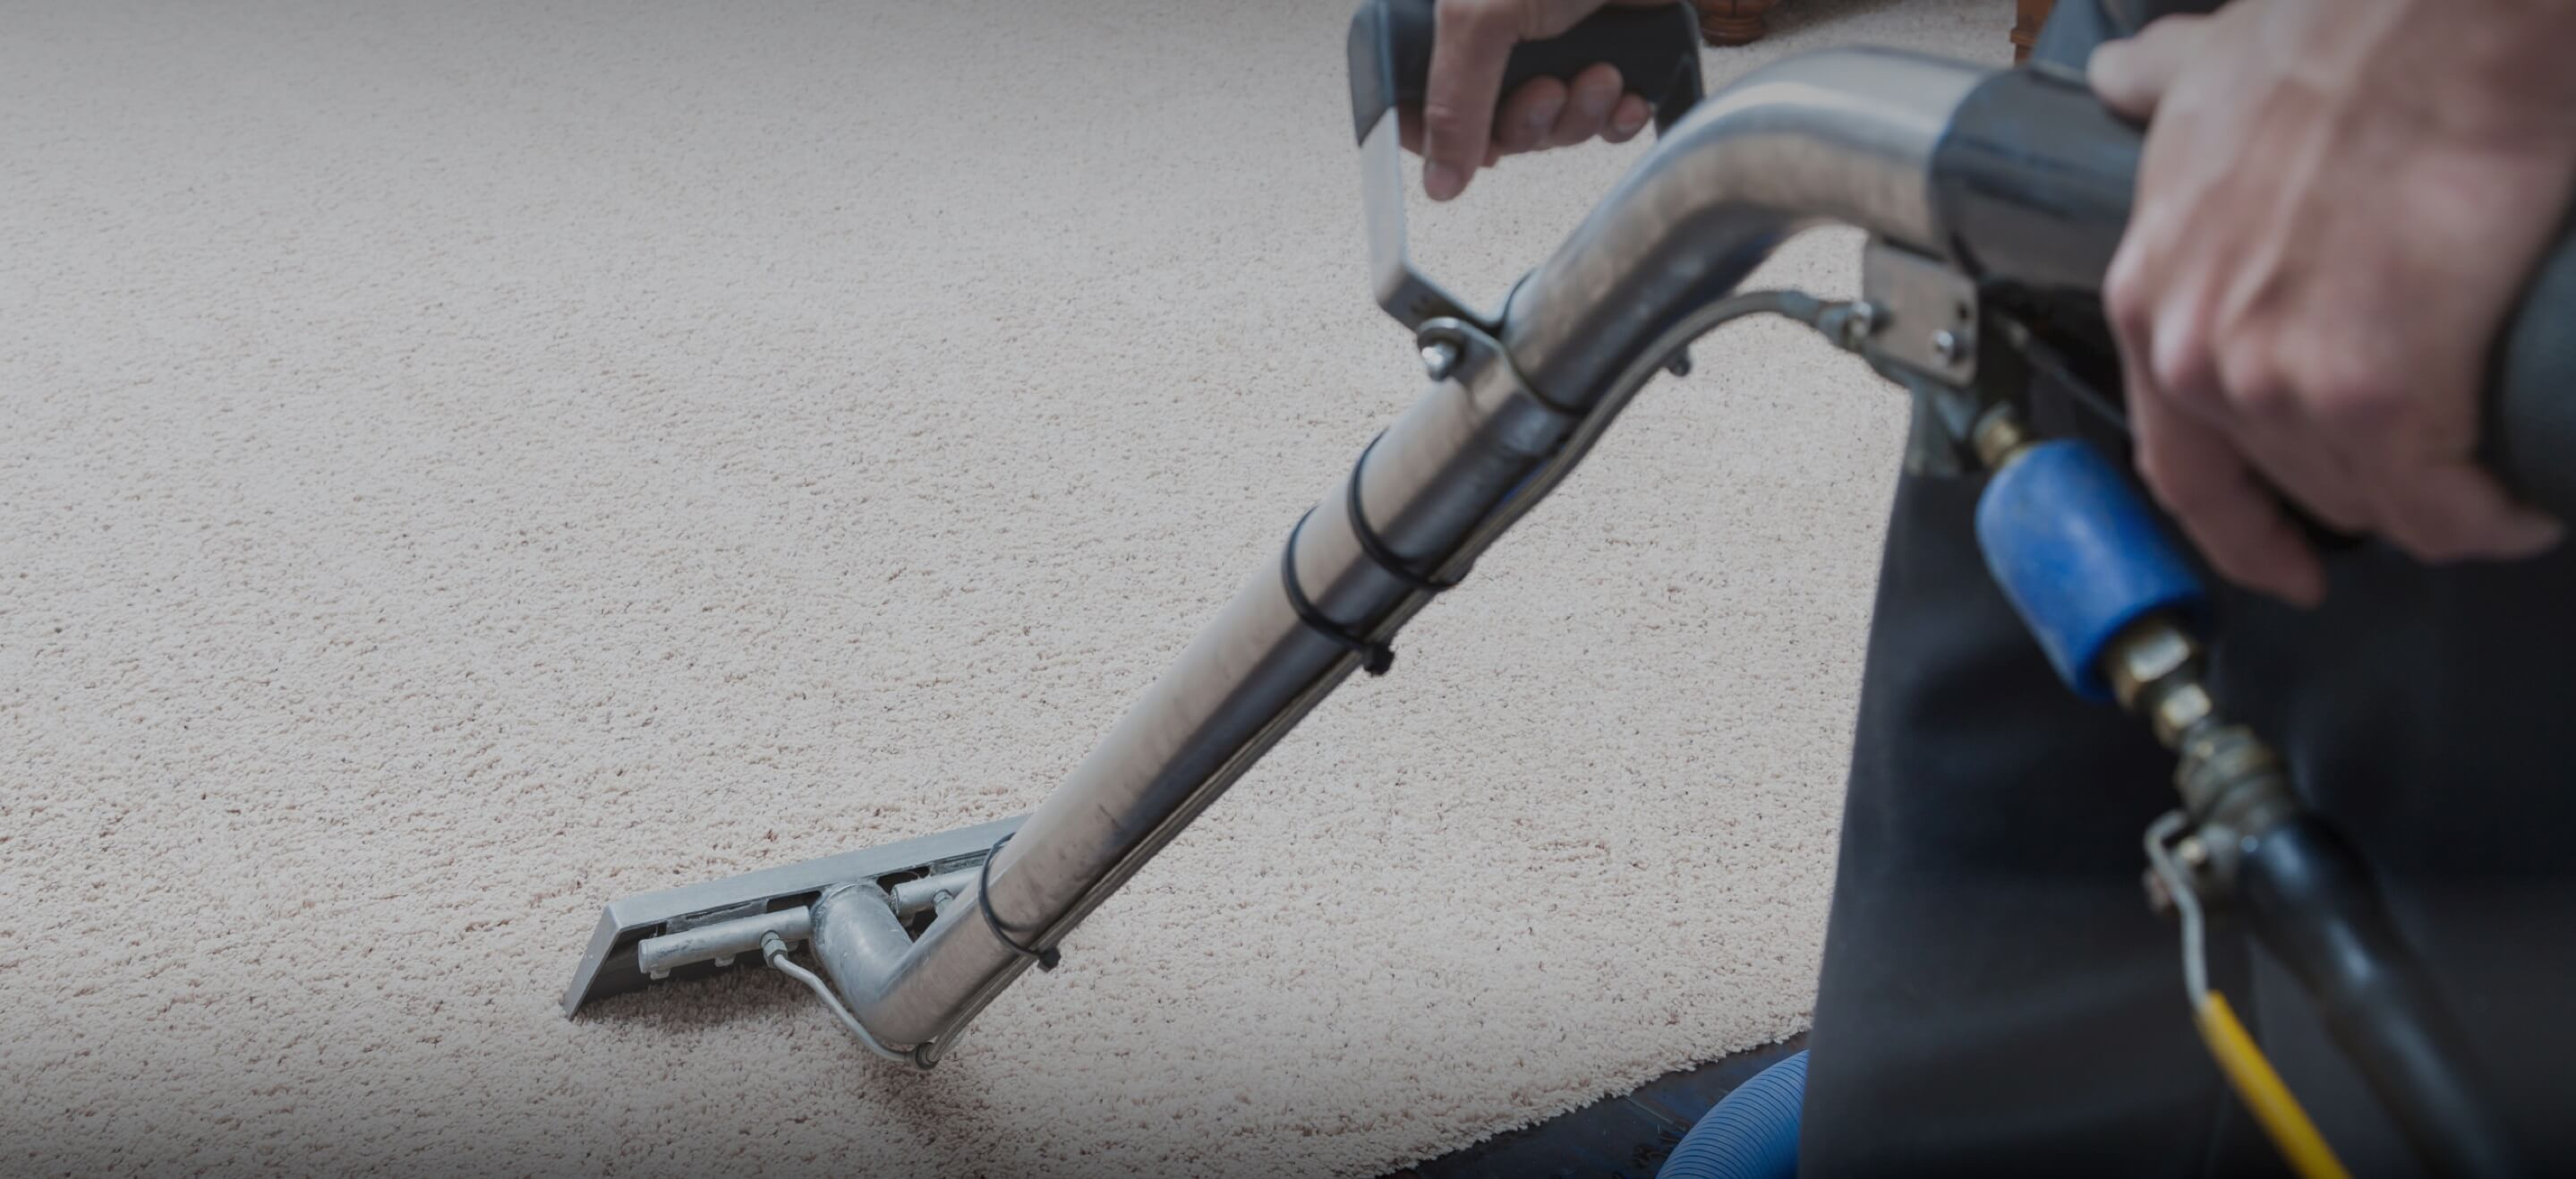 Carpet Cleaning In Madison Upholstery Cleaning Rug